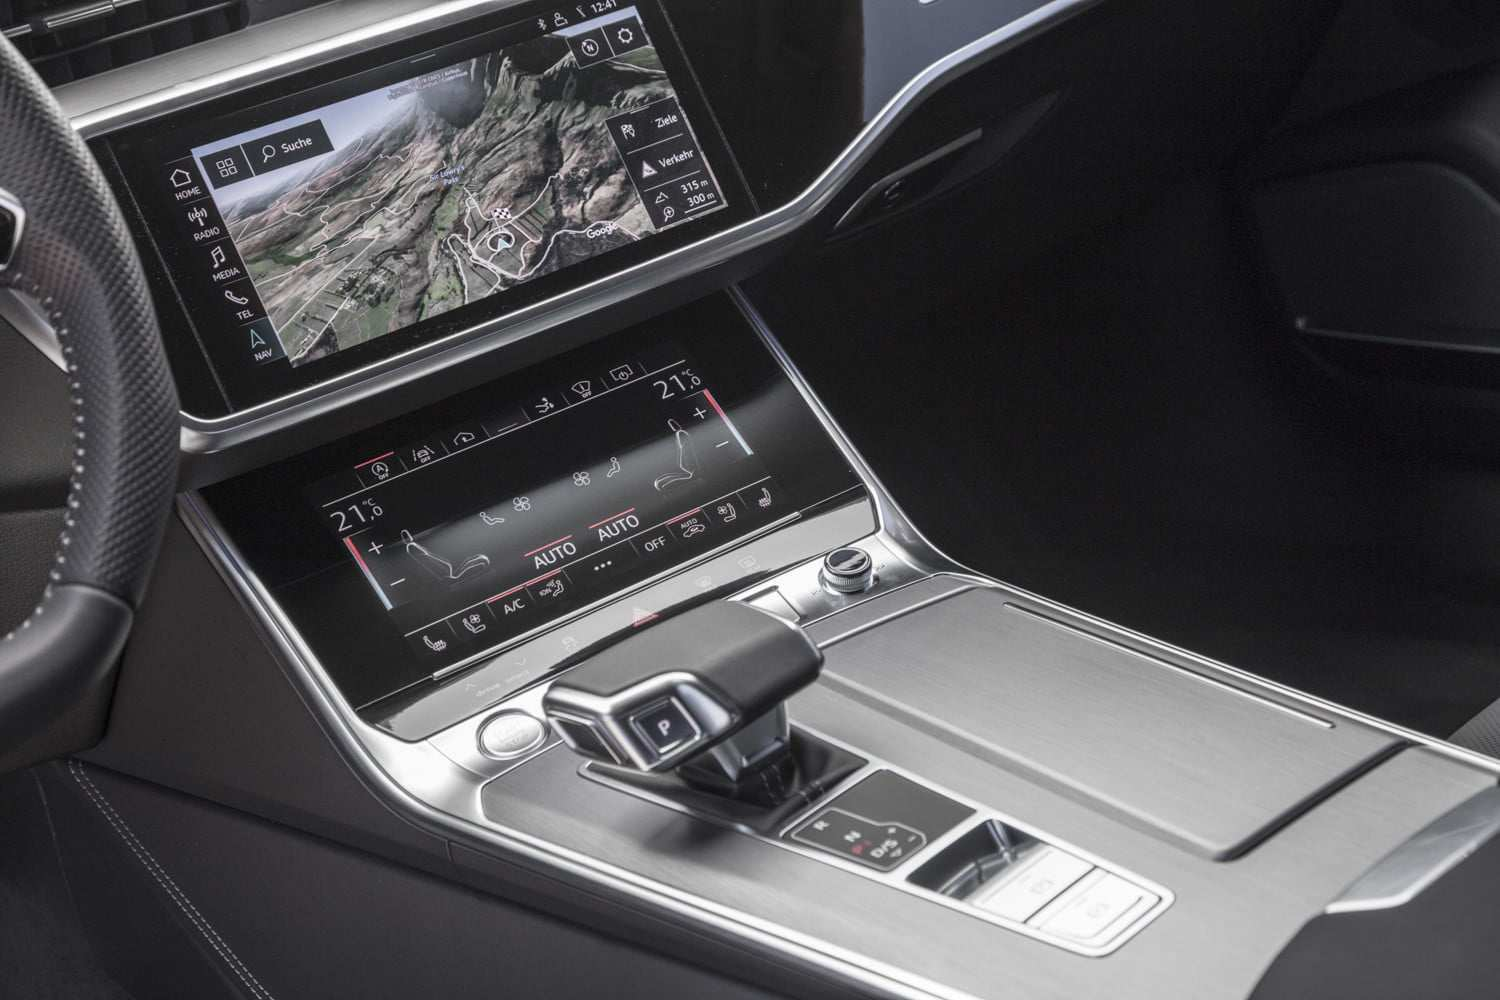 61 Best Review 2019 Audi A7 Interior Exterior and Interior with 2019 Audi A7 Interior